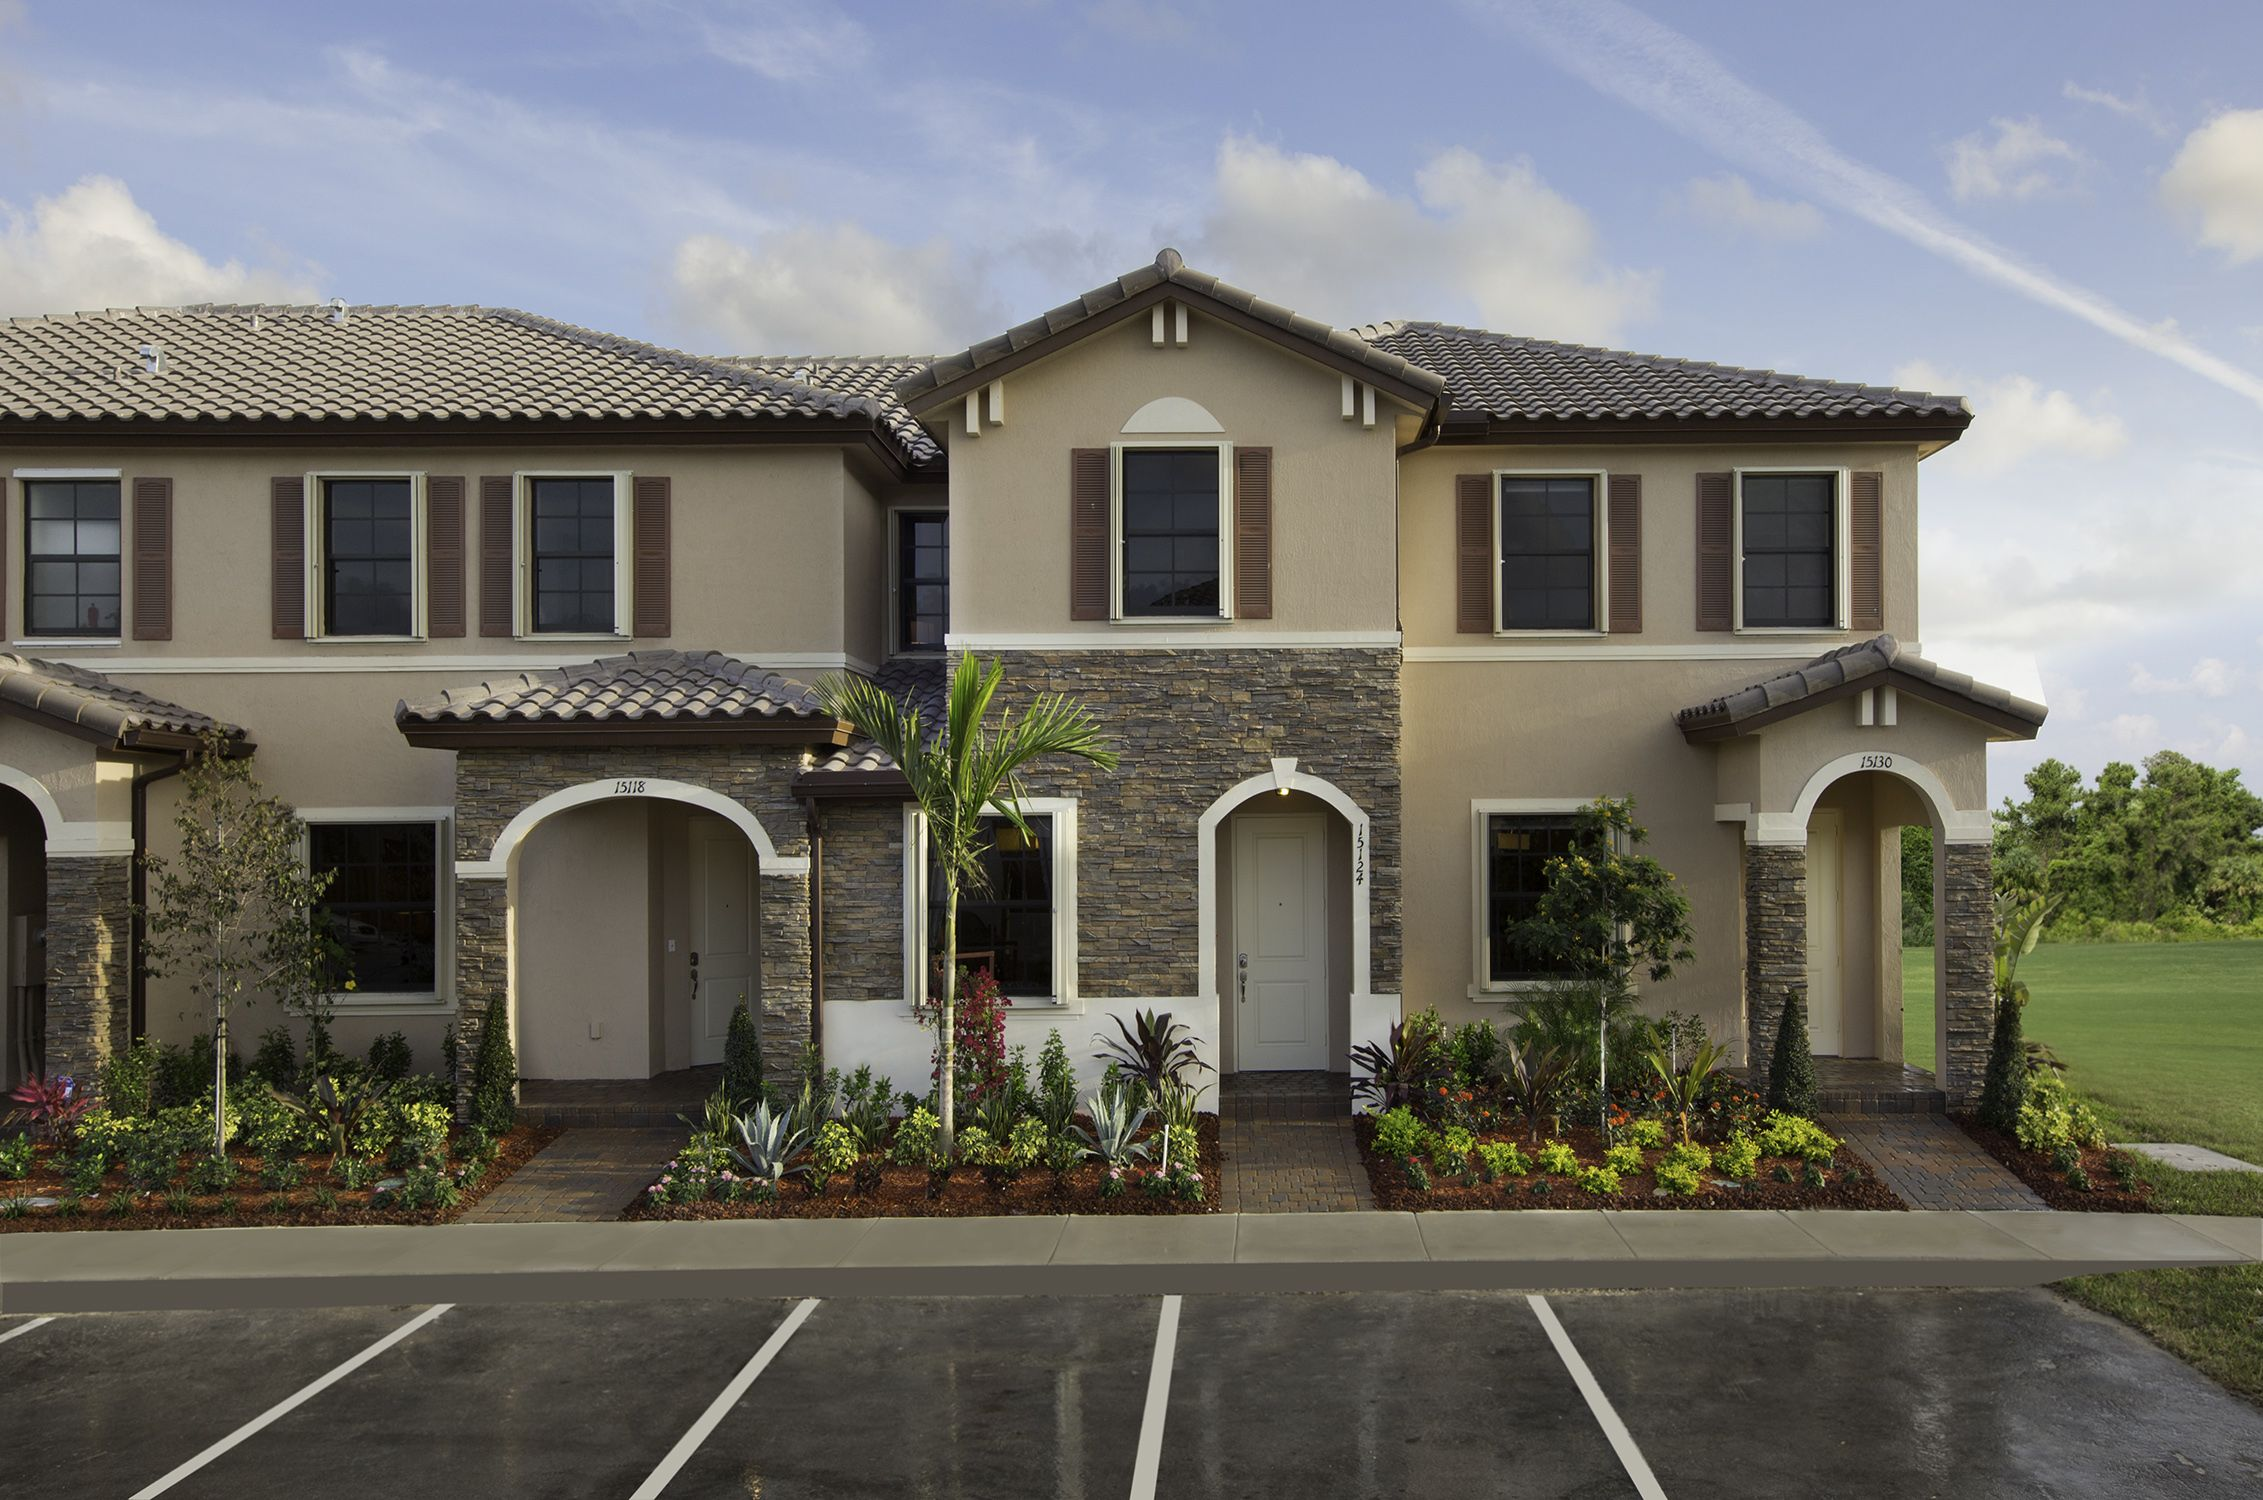 1516542cad77c73422e21594e5bef493 - Lennar At Gardens By The Hammocks